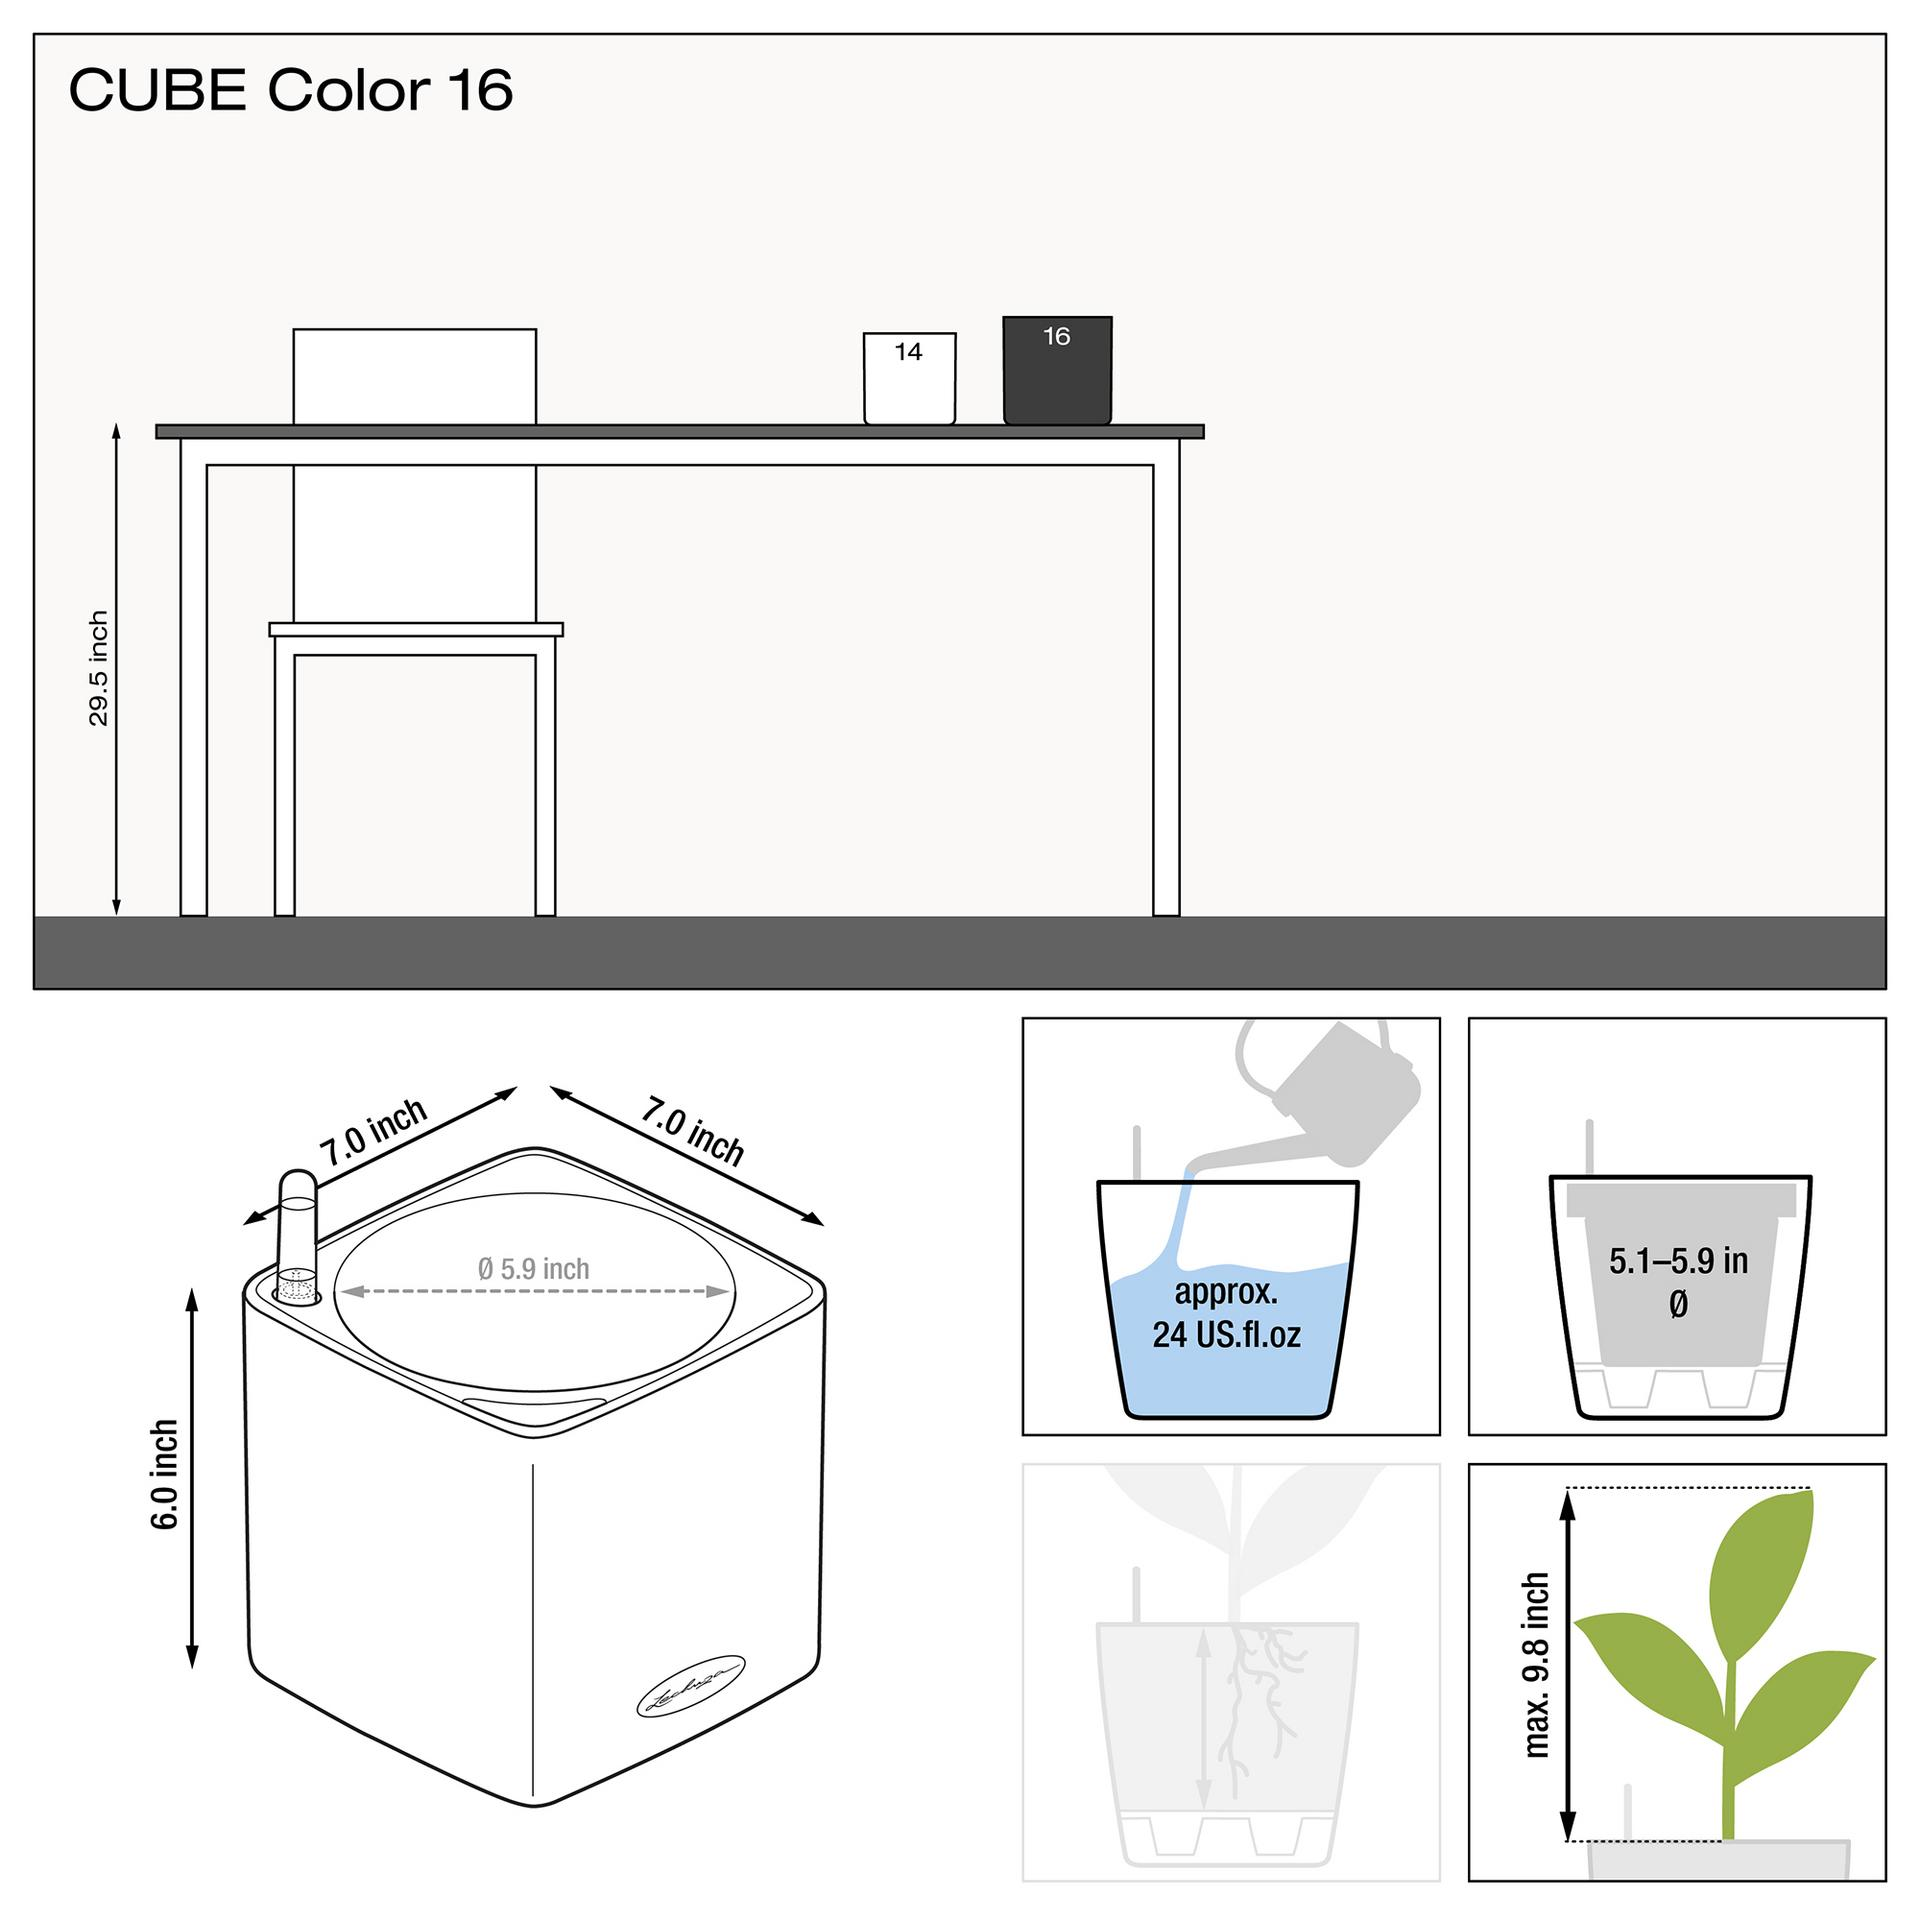 le_cube-color16_product_addi_nz_us